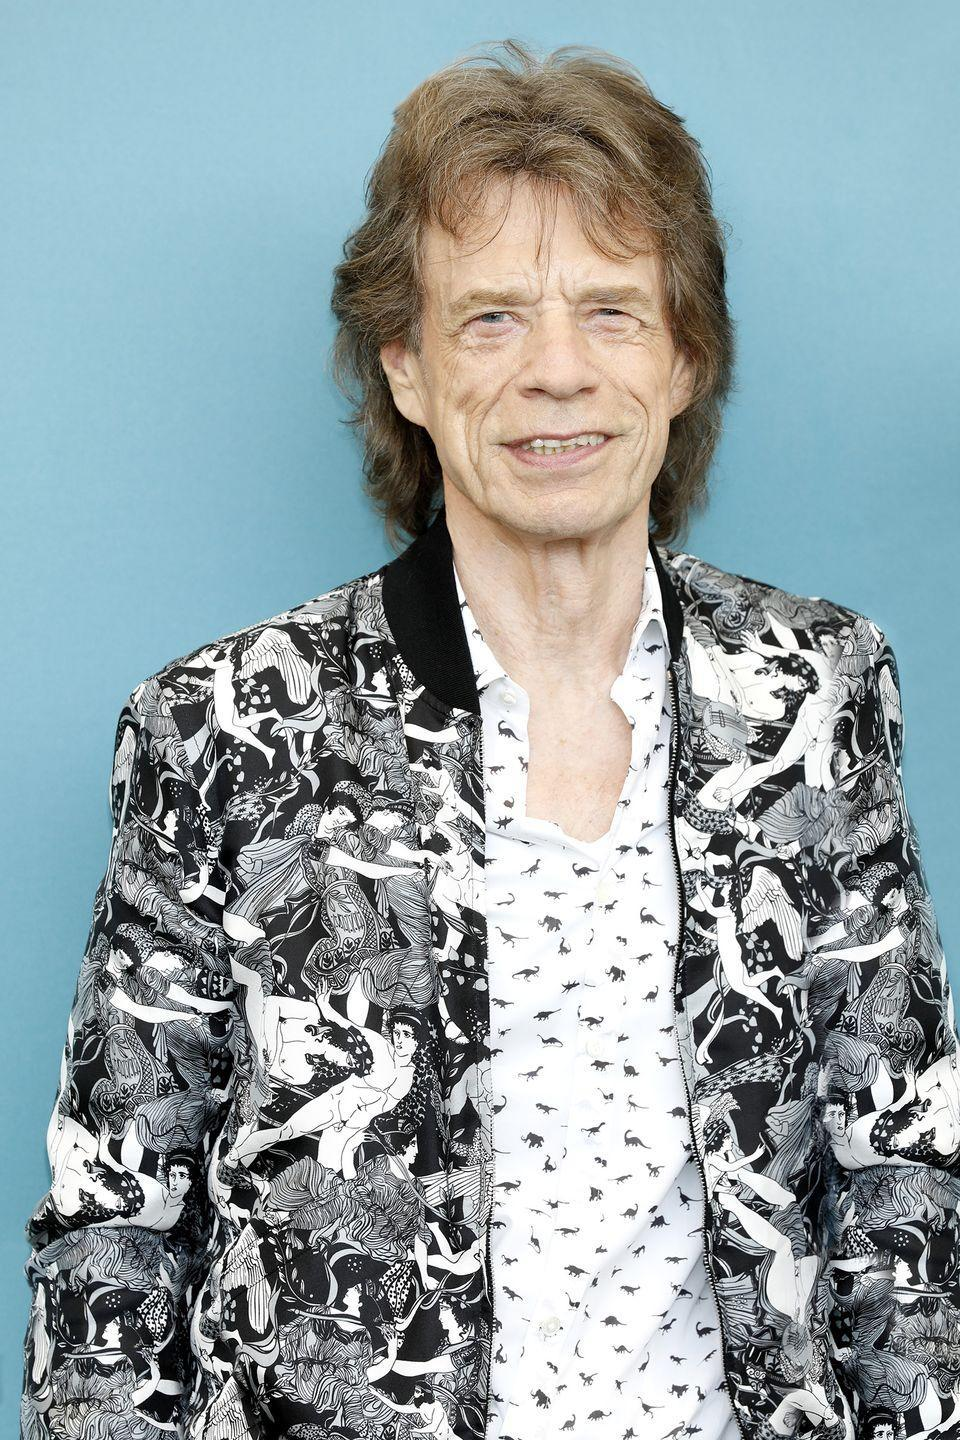 <p><strong>Birthday: </strong>July 26</p><p><strong>Age Turning: </strong>77</p><p>The Rolling Stones frontman—and yet another famous Leo—turns 77 this year.<br></p>